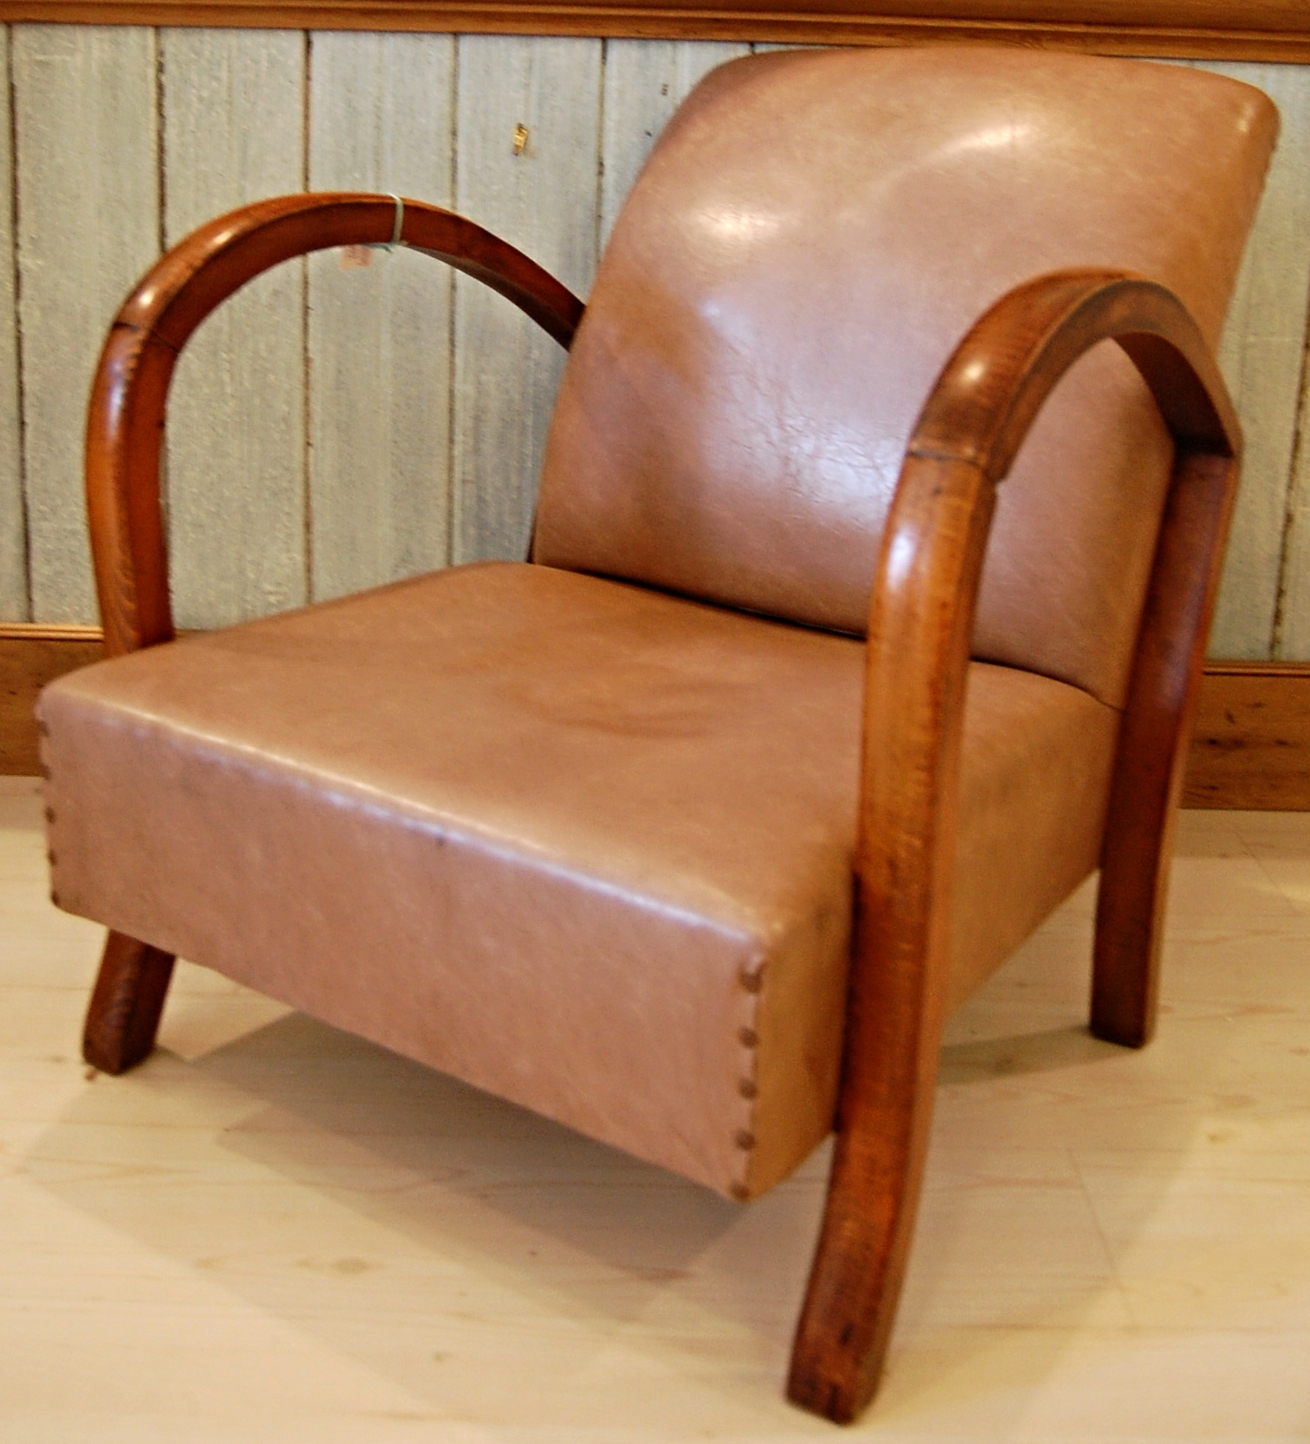 Vintage Sixties Decade Chair